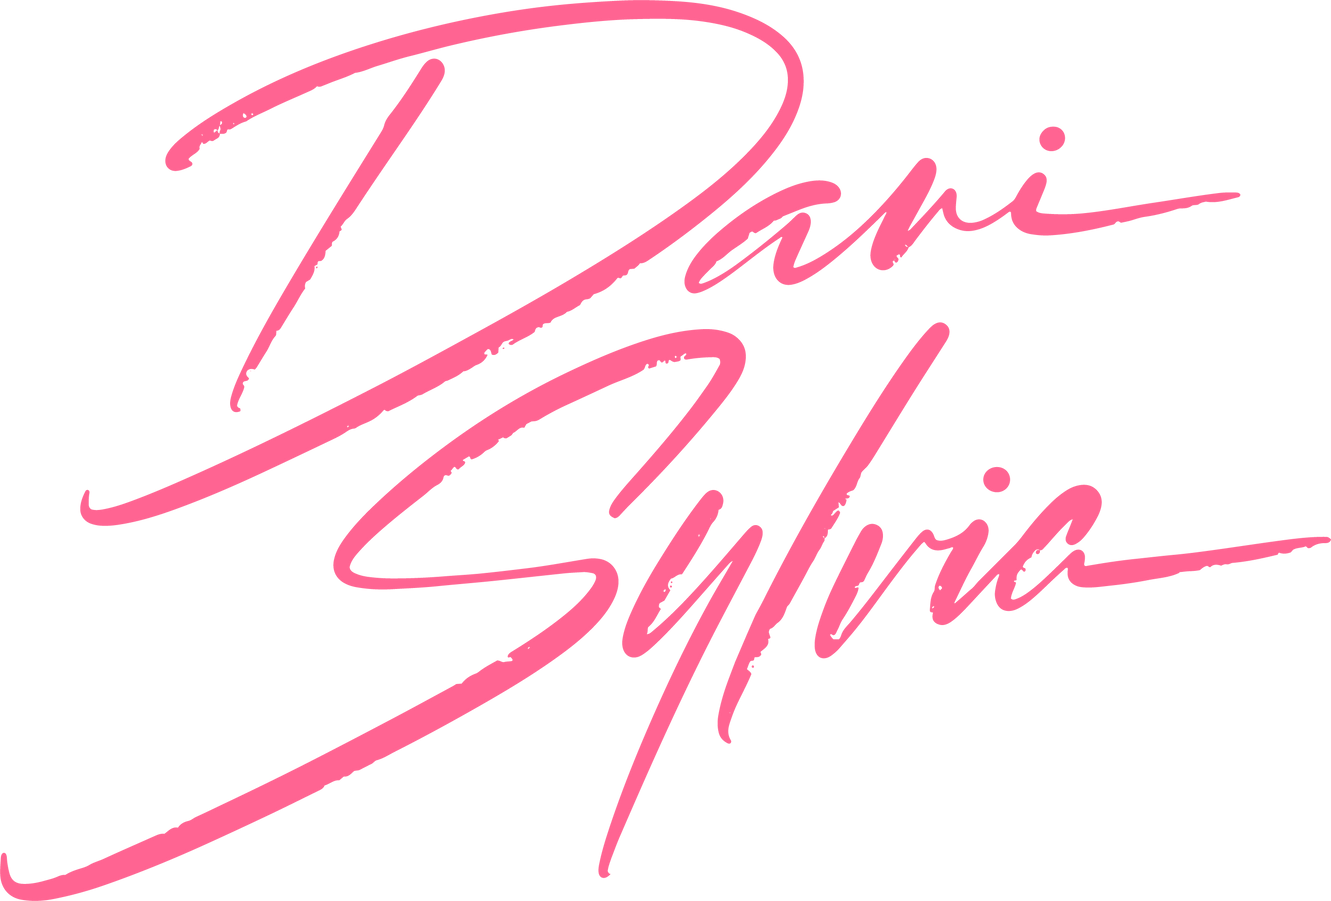 Dani-Sylvia-pink-high-res-trimmed.png